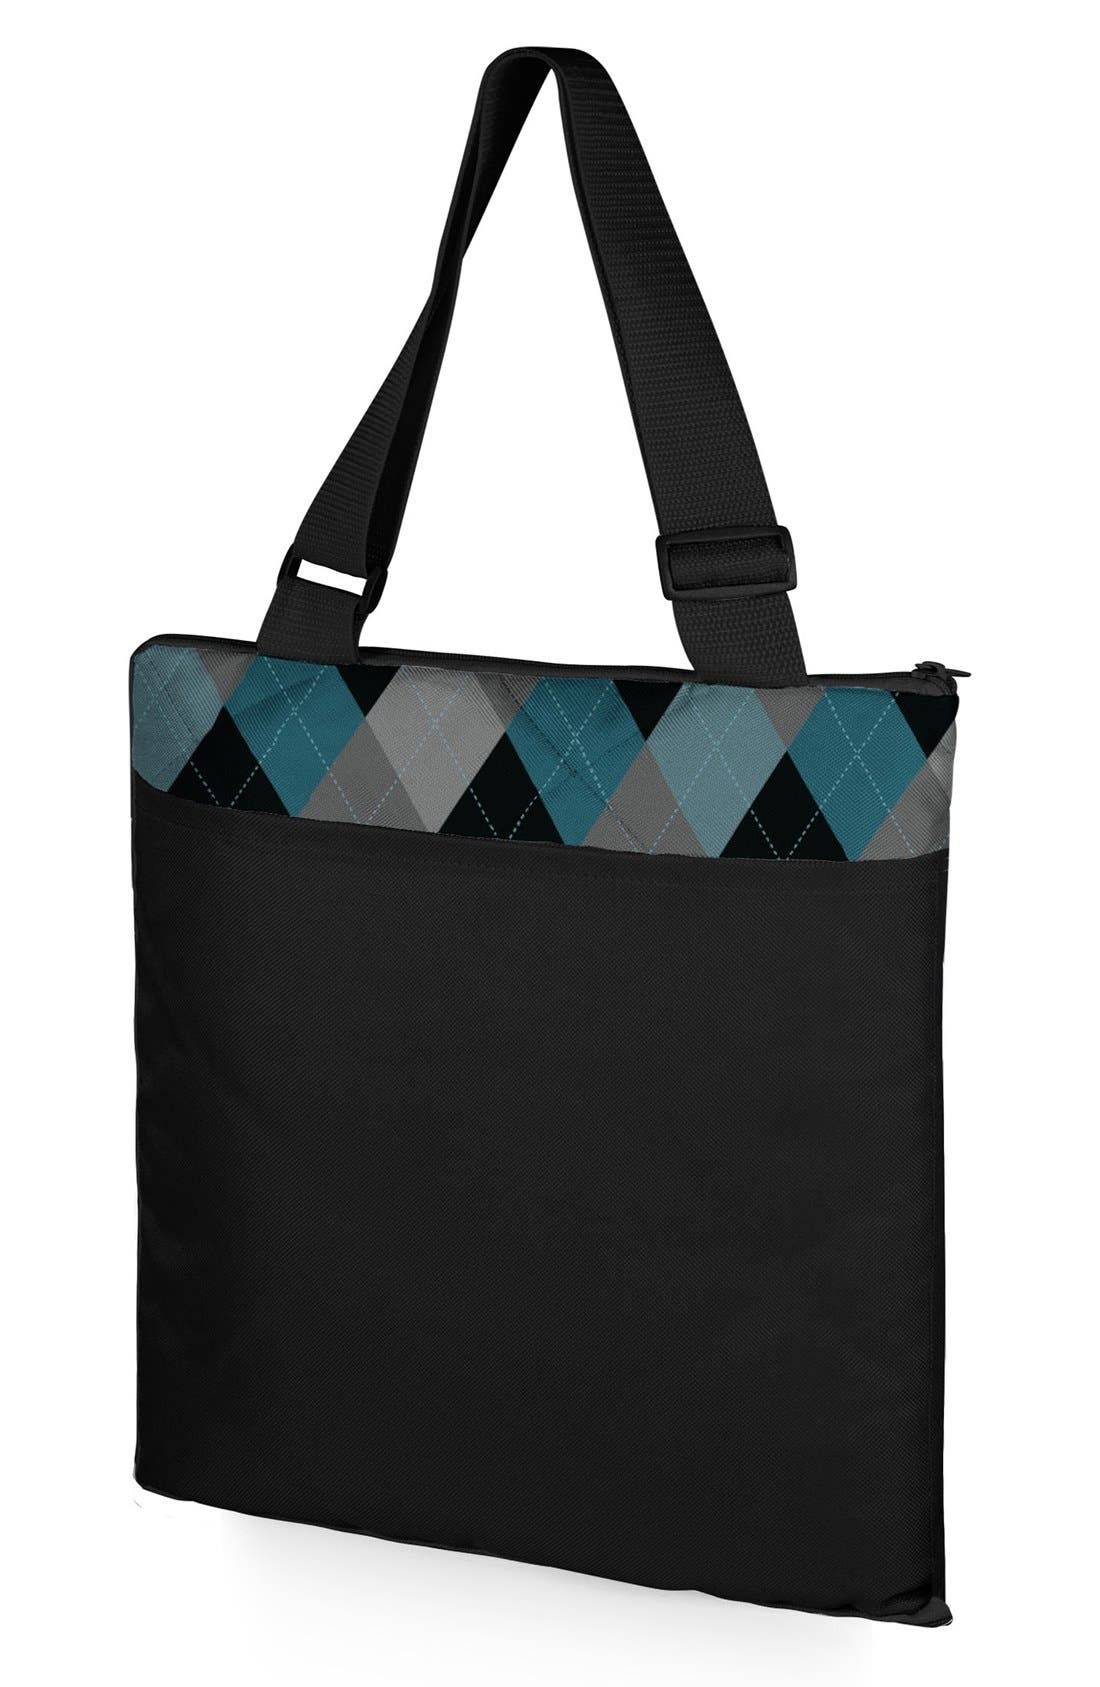 'Vista XL' Fold-Up Blanket Tote,                             Alternate thumbnail 3, color,                             001